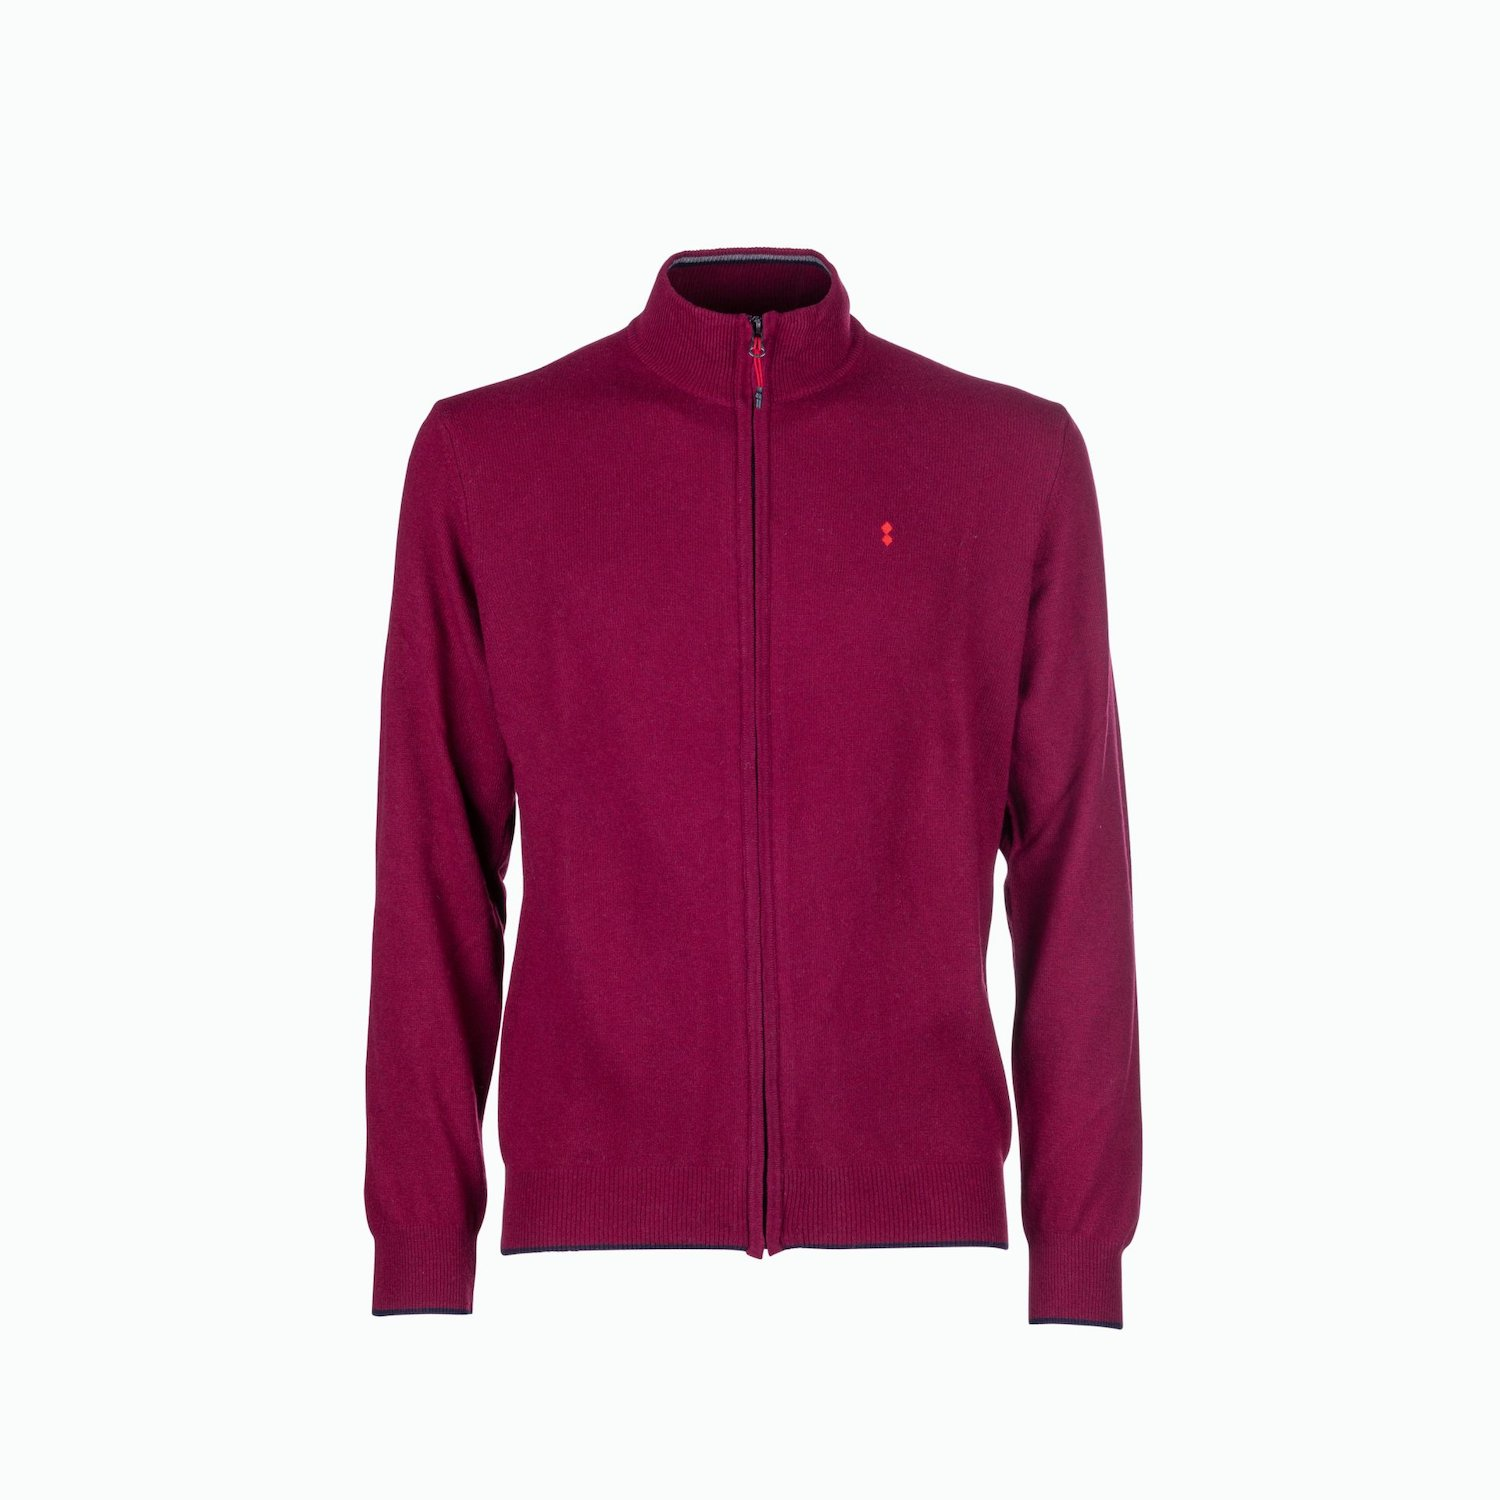 Cardigan D70 - Biking Red